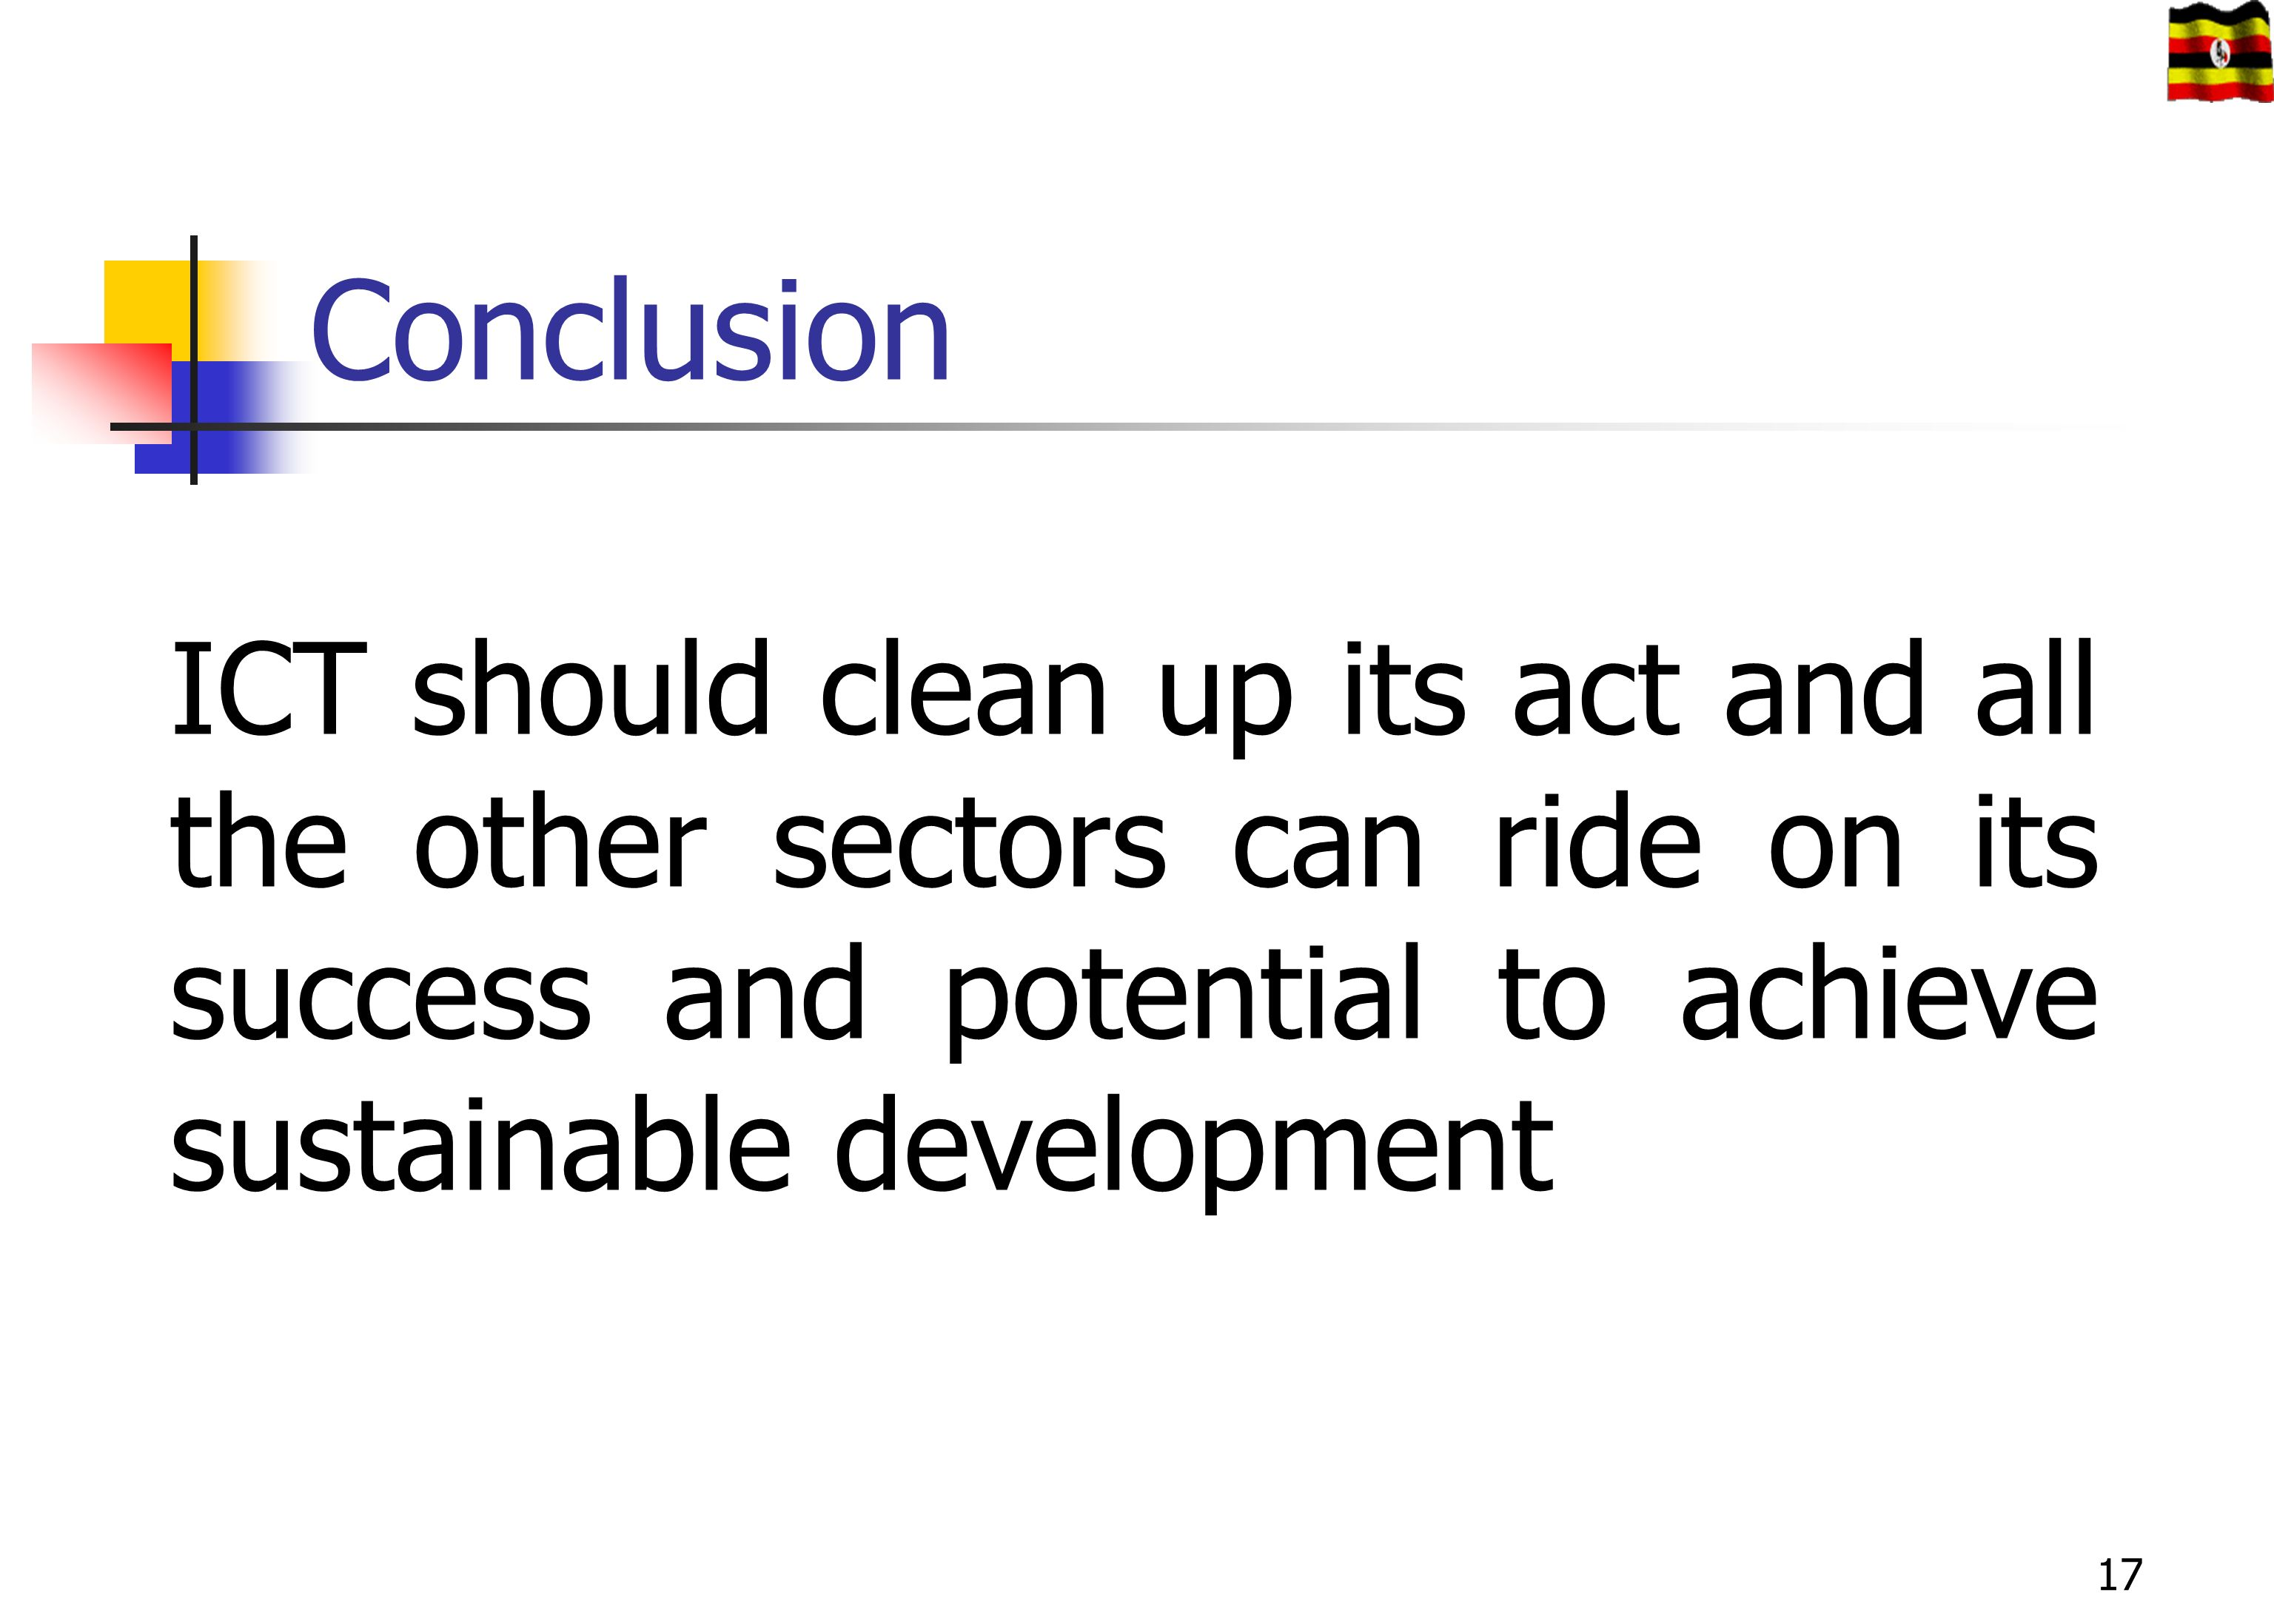 Conclusion ICT should clean up its act and all the other sectors can ride on its success and potential to achieve sustainable development.